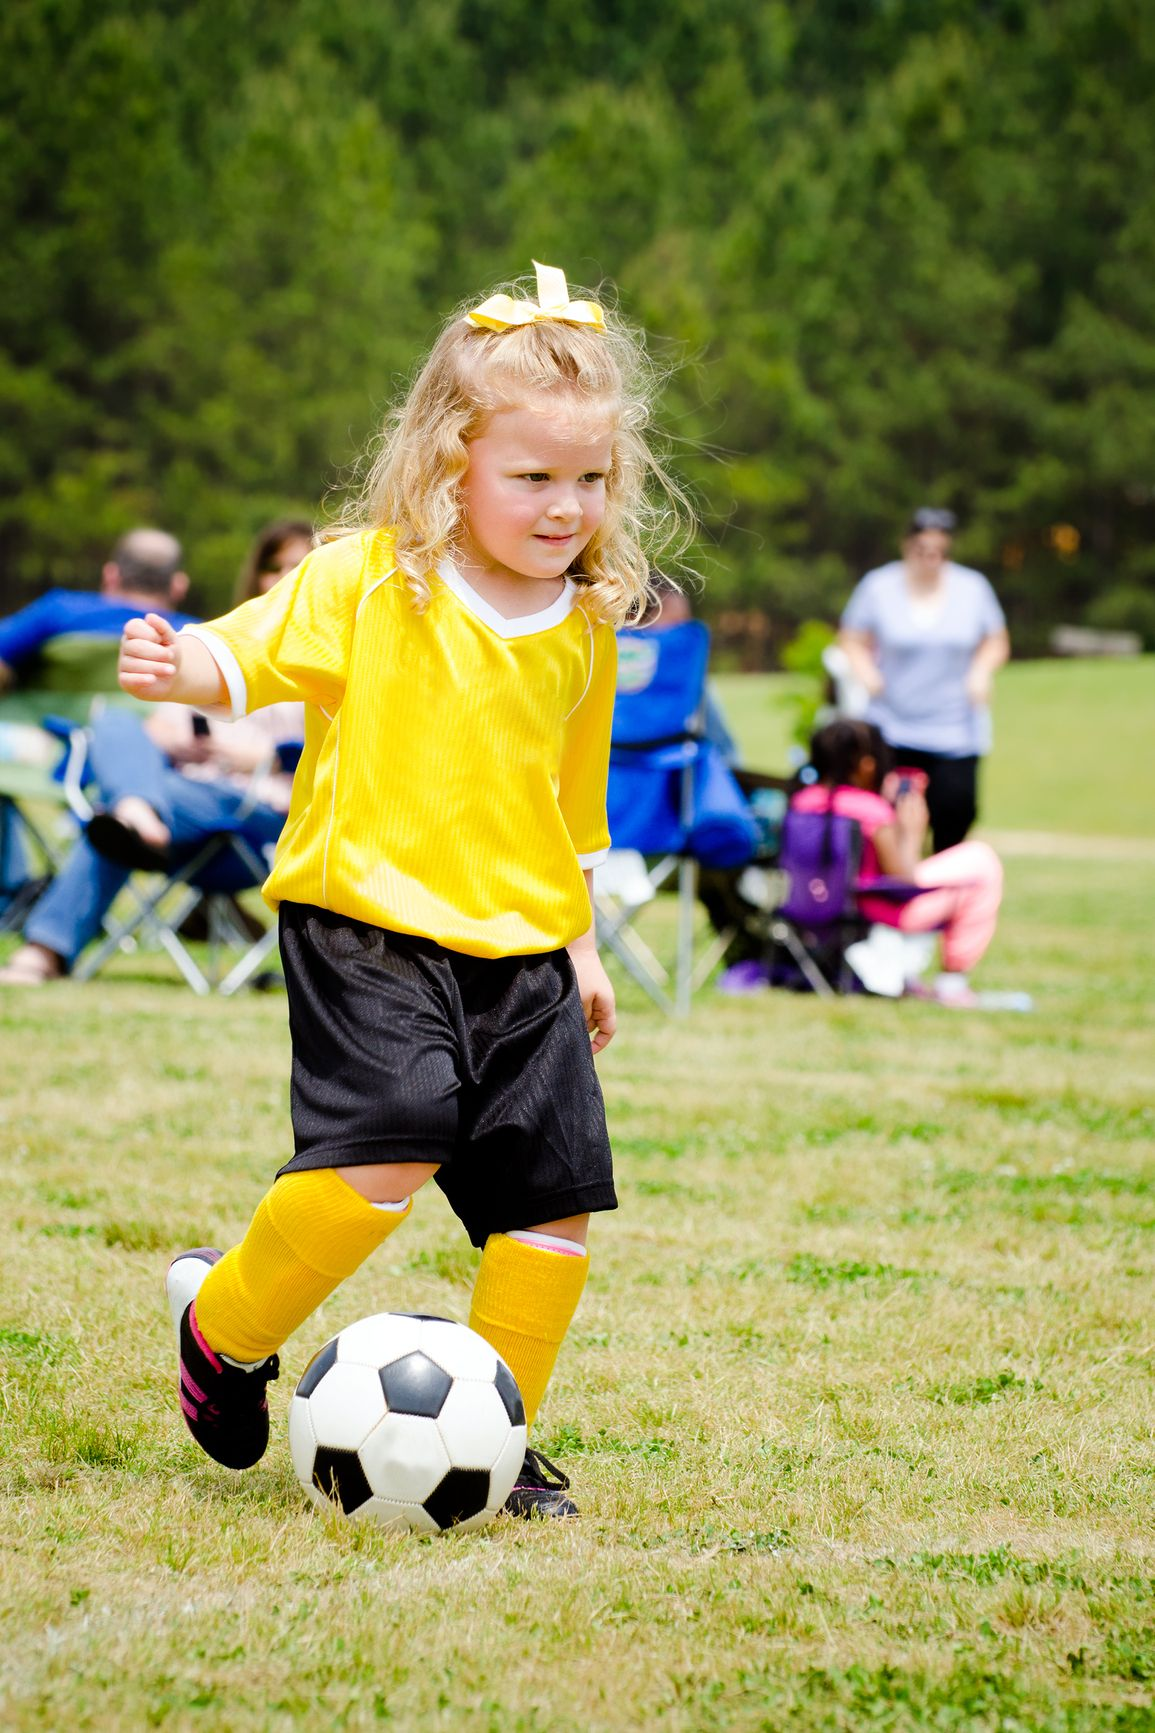 Cute young girl in uniform playing in organized youth league